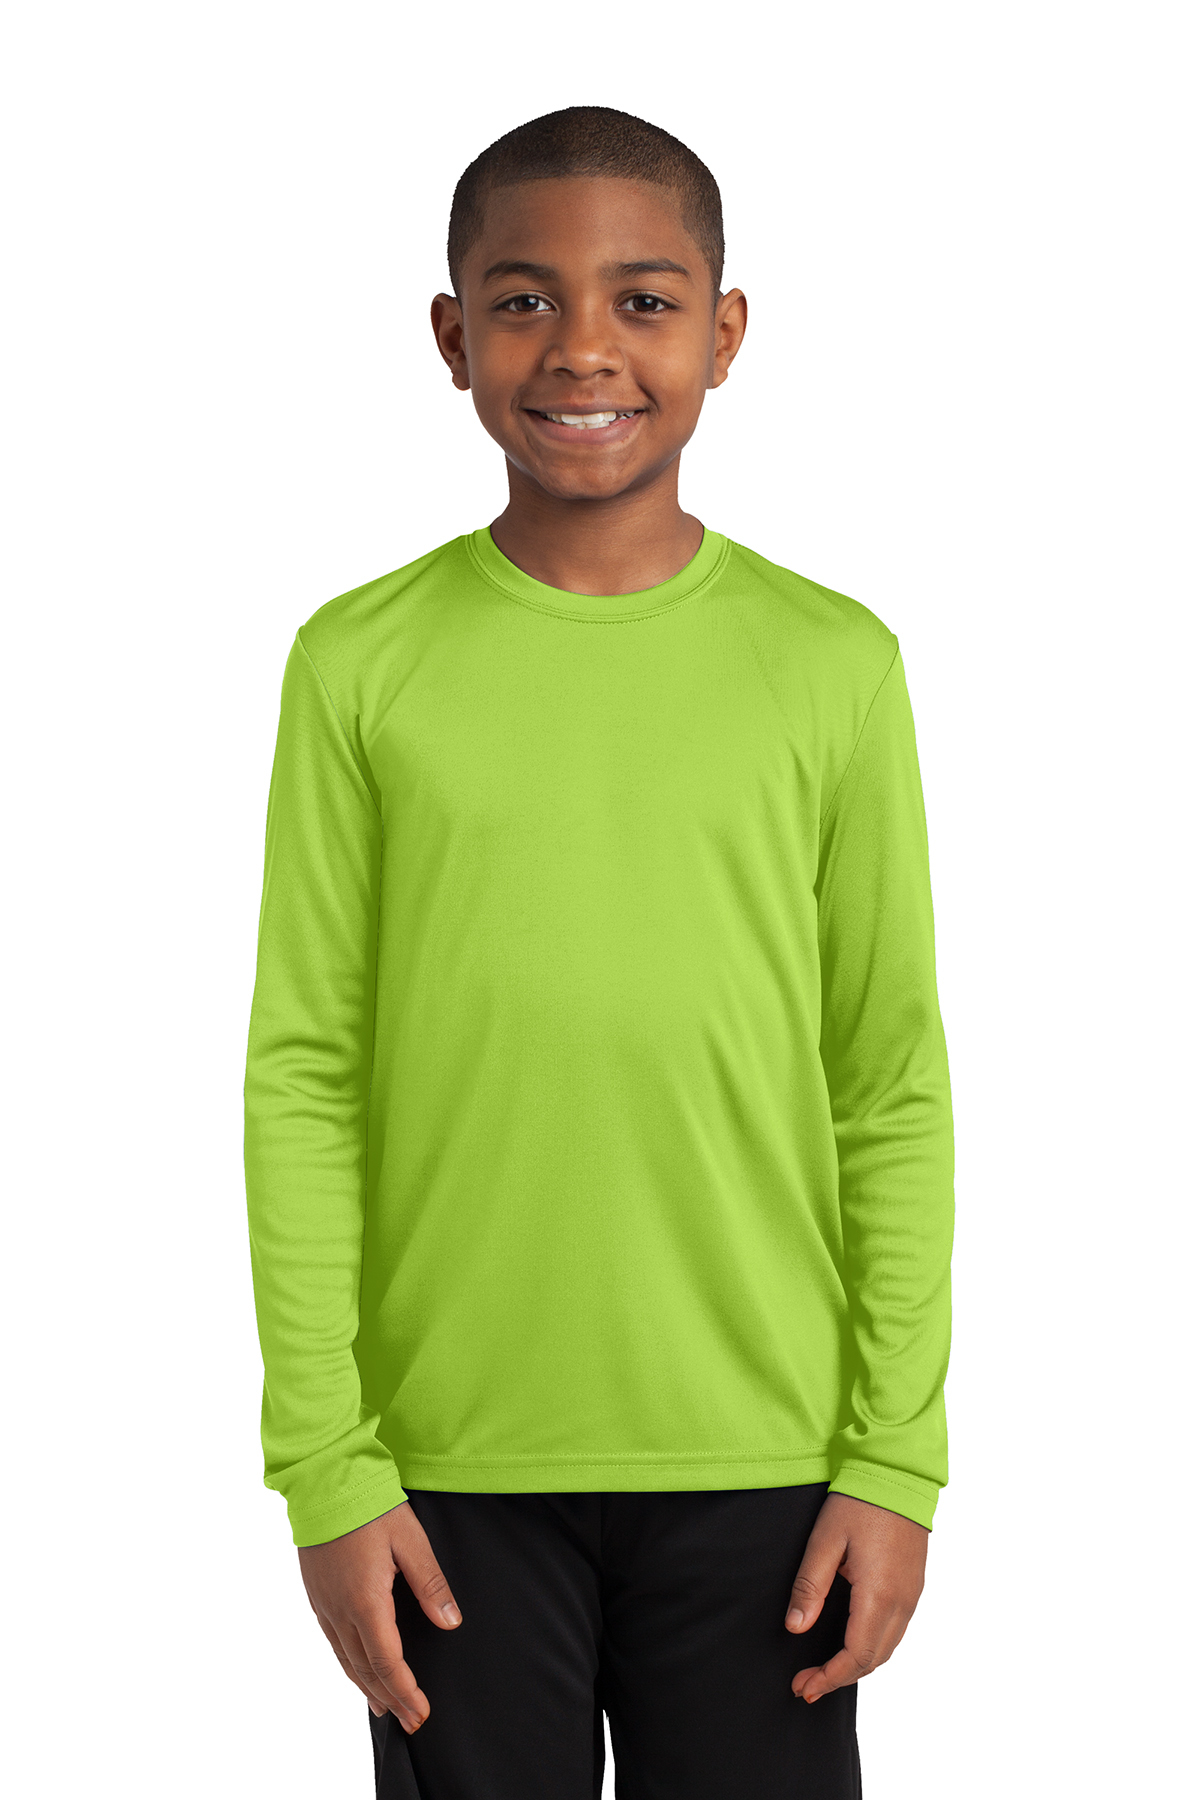 ed4f6908 Sport-Tek® Youth Long Sleeve PosiCharge® Competitor™ Tee   Long ...